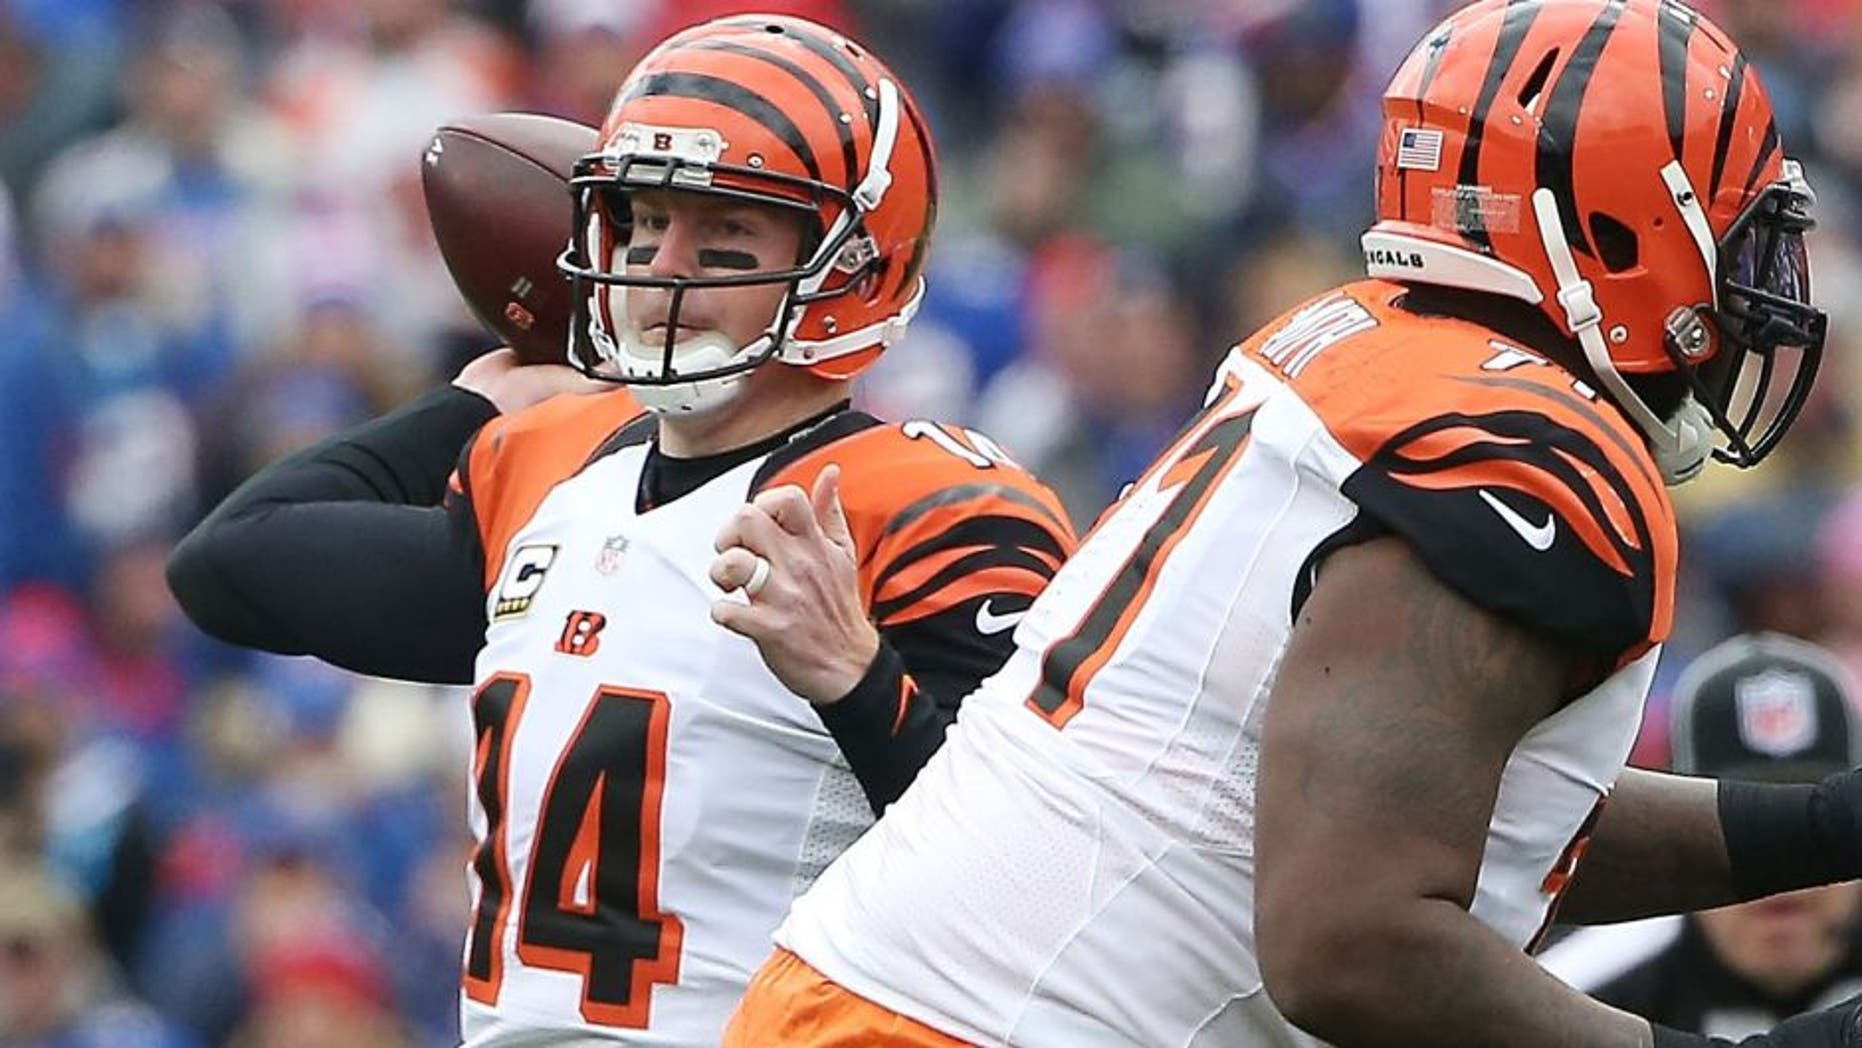 ORCHARD PARK, NY - OCTOBER 18: Andy Dalton #14 of the Cincinnati Bengals looks to throw against the Buffalo Bills during the first half at Ralph Wilson Stadium on October 18, 2015 in Orchard Park, New York. (Photo by Tom Szczerbowski/Getty Images)